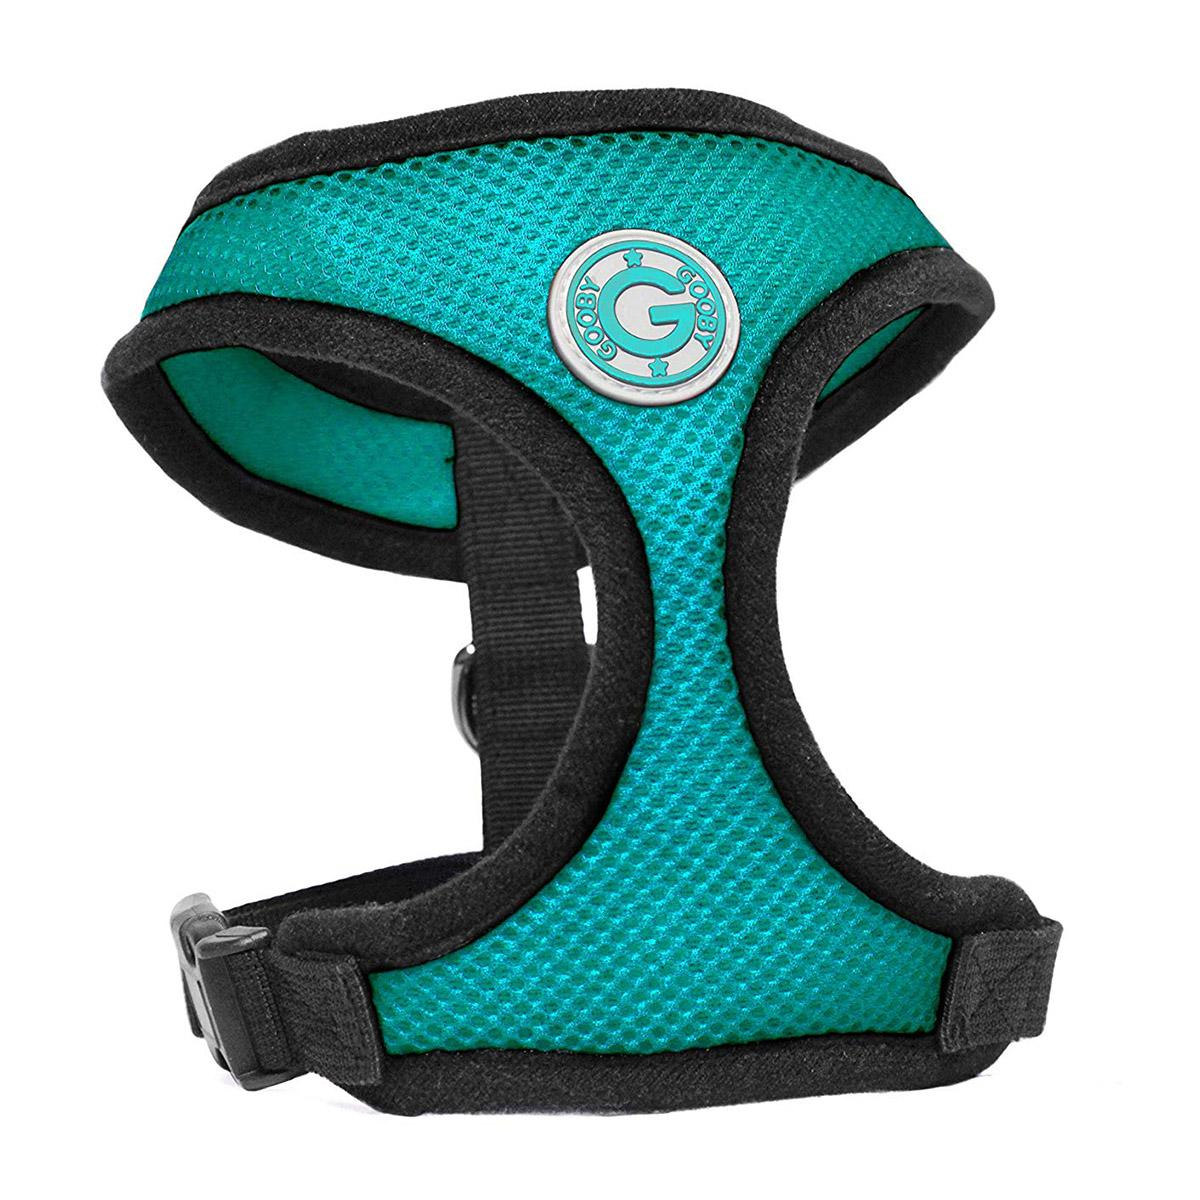 Gooby Soft Mesh Dog Harness - Turquoise